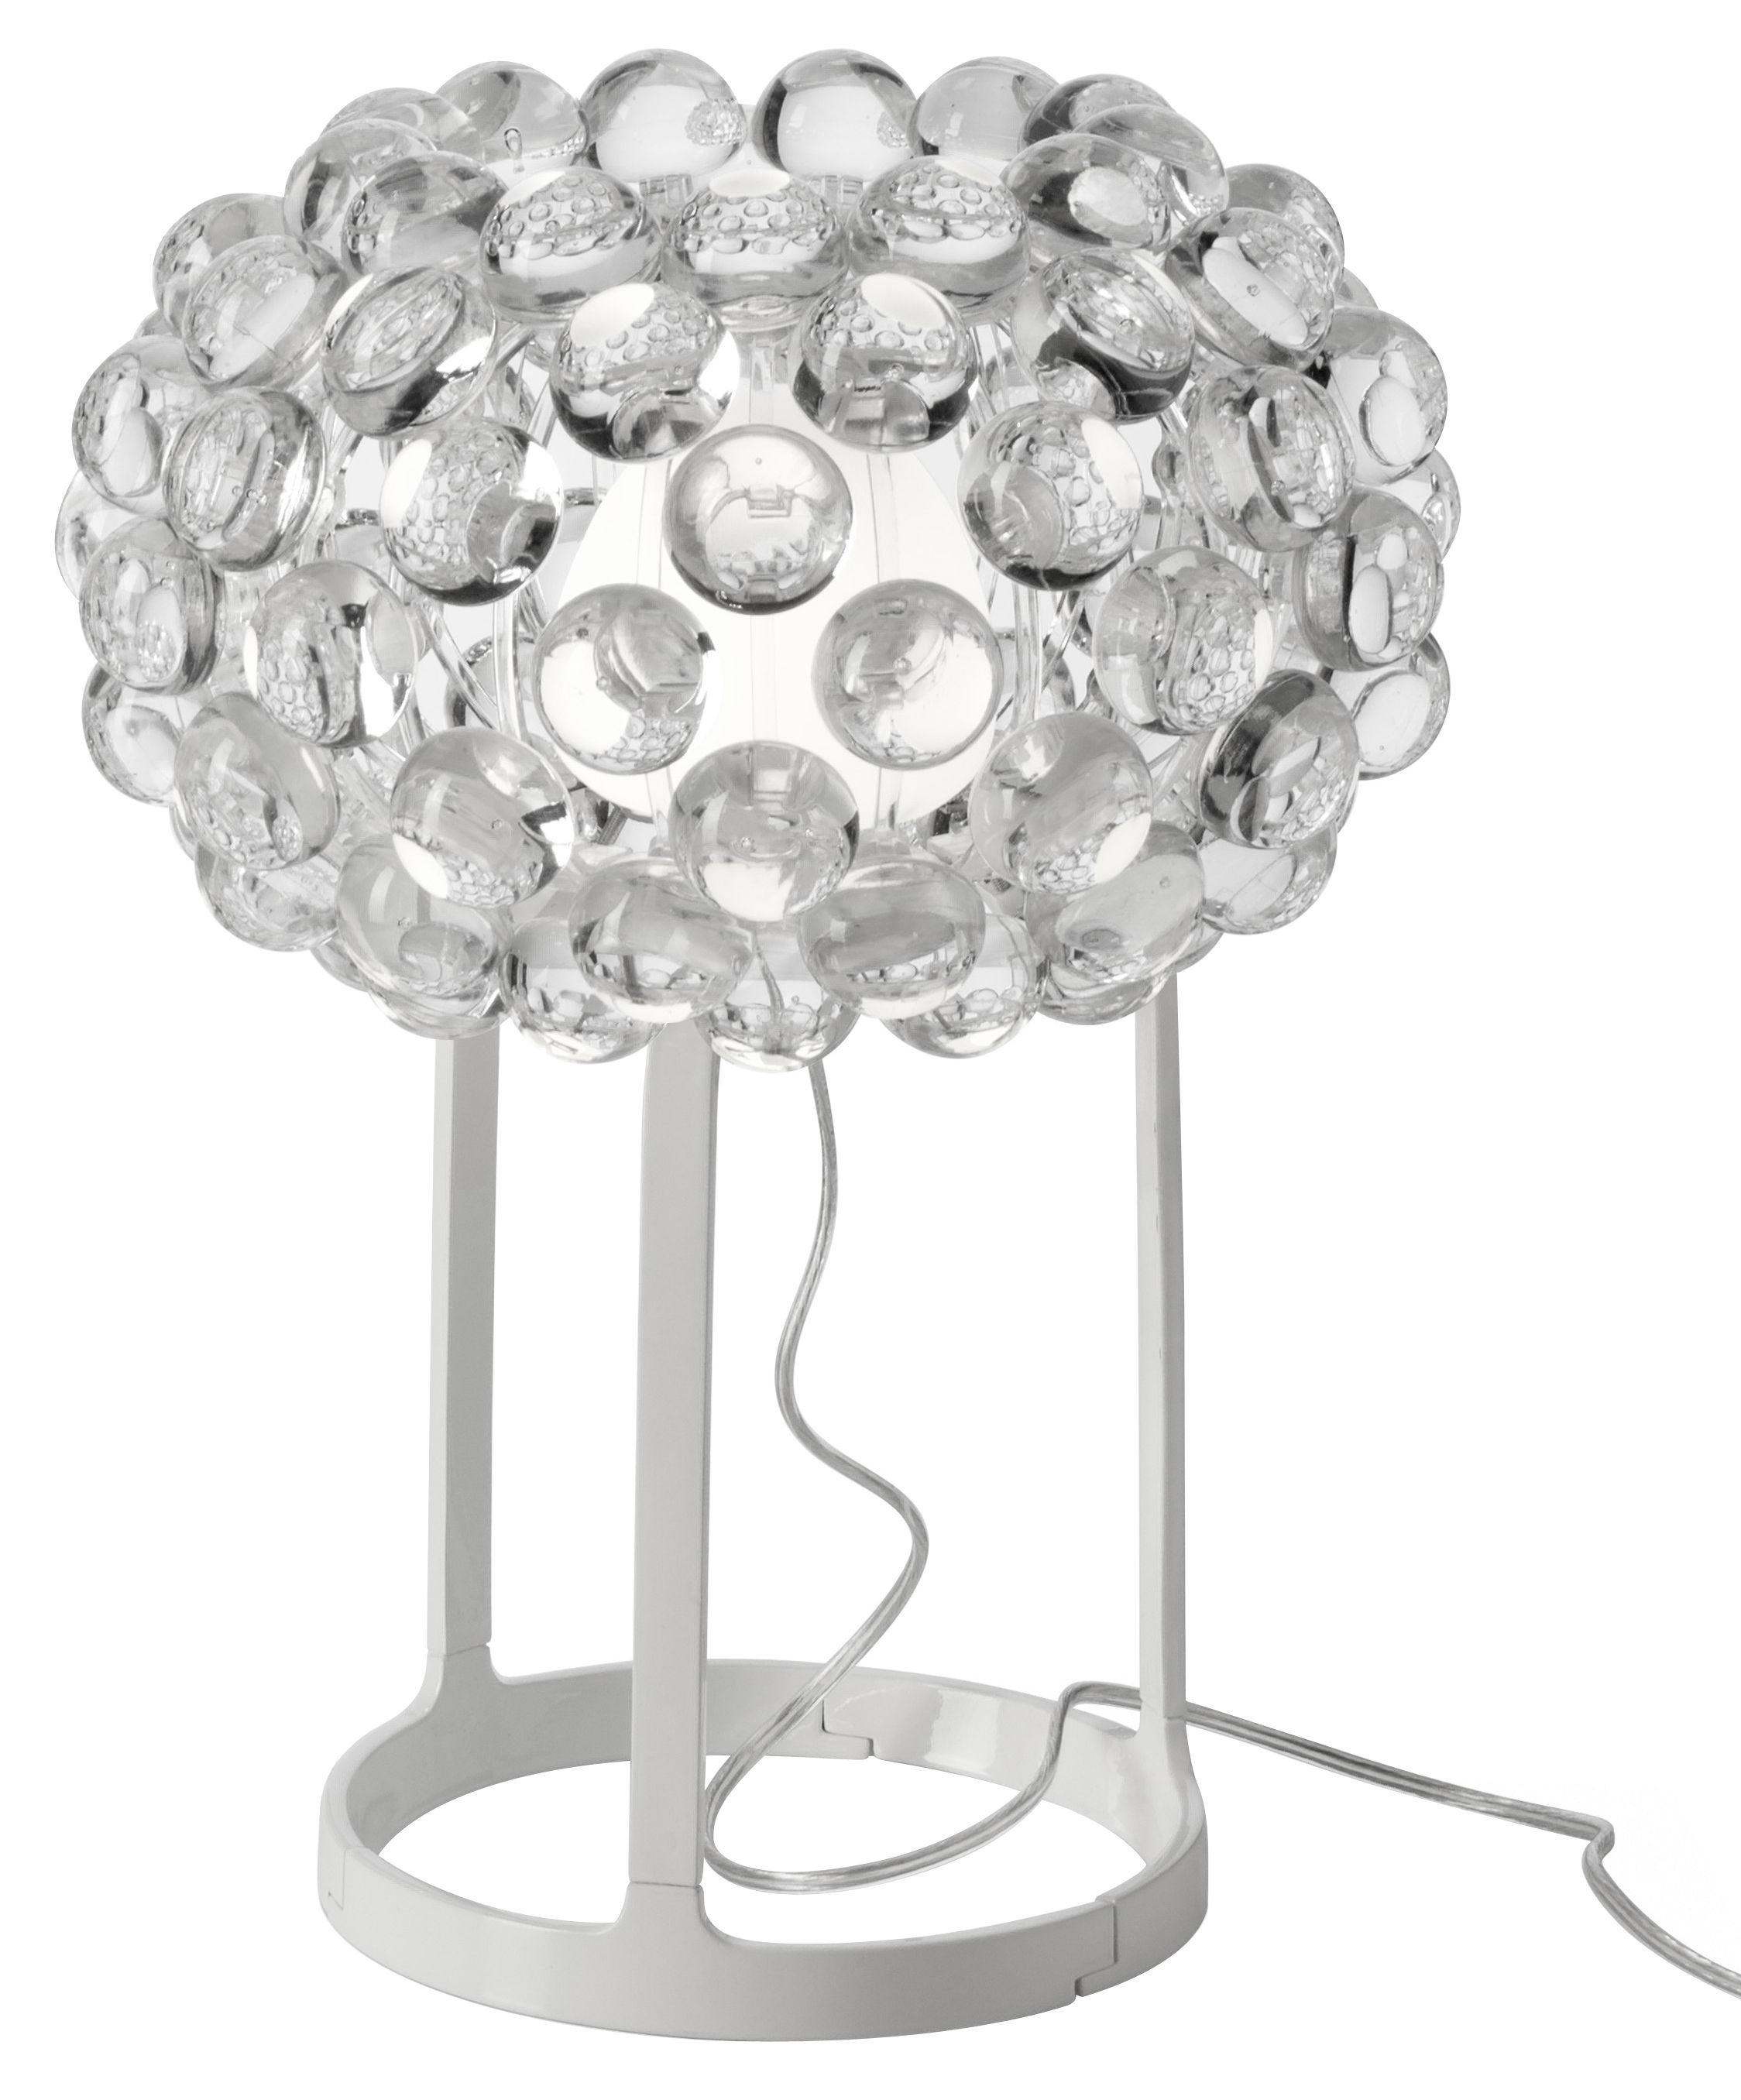 Lighting - Table Lamps - Caboche Piccola Table lamp - Piccola by Foscarini - Clear - White - Metal, PMMA